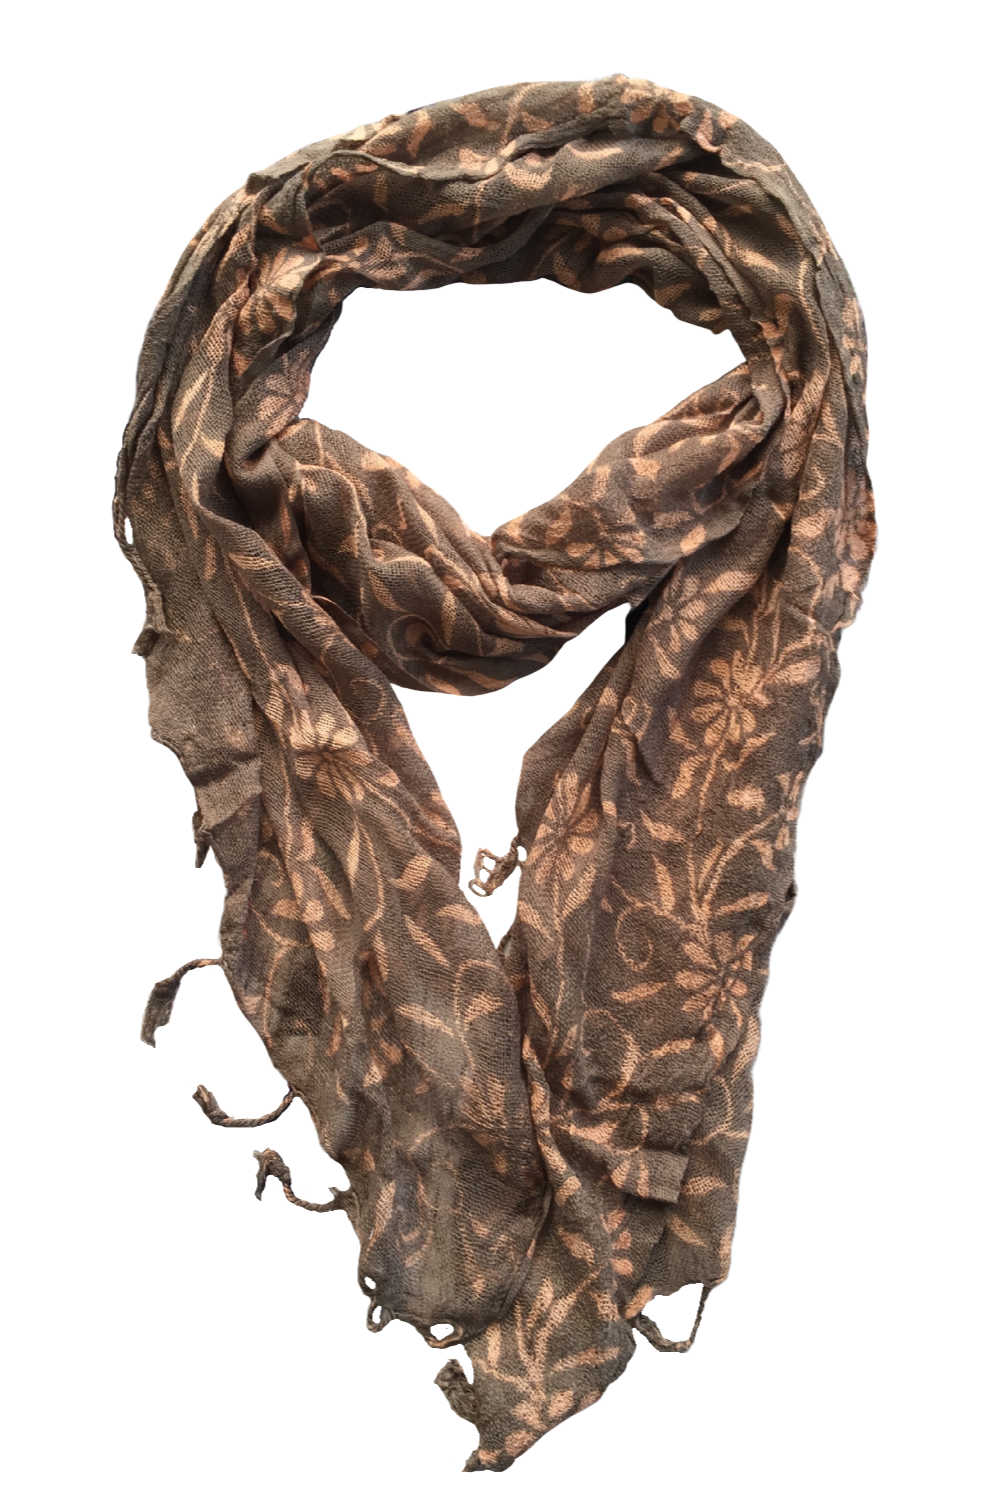 ladies-Scarf-floral-design-khaki-cream - Holley Day